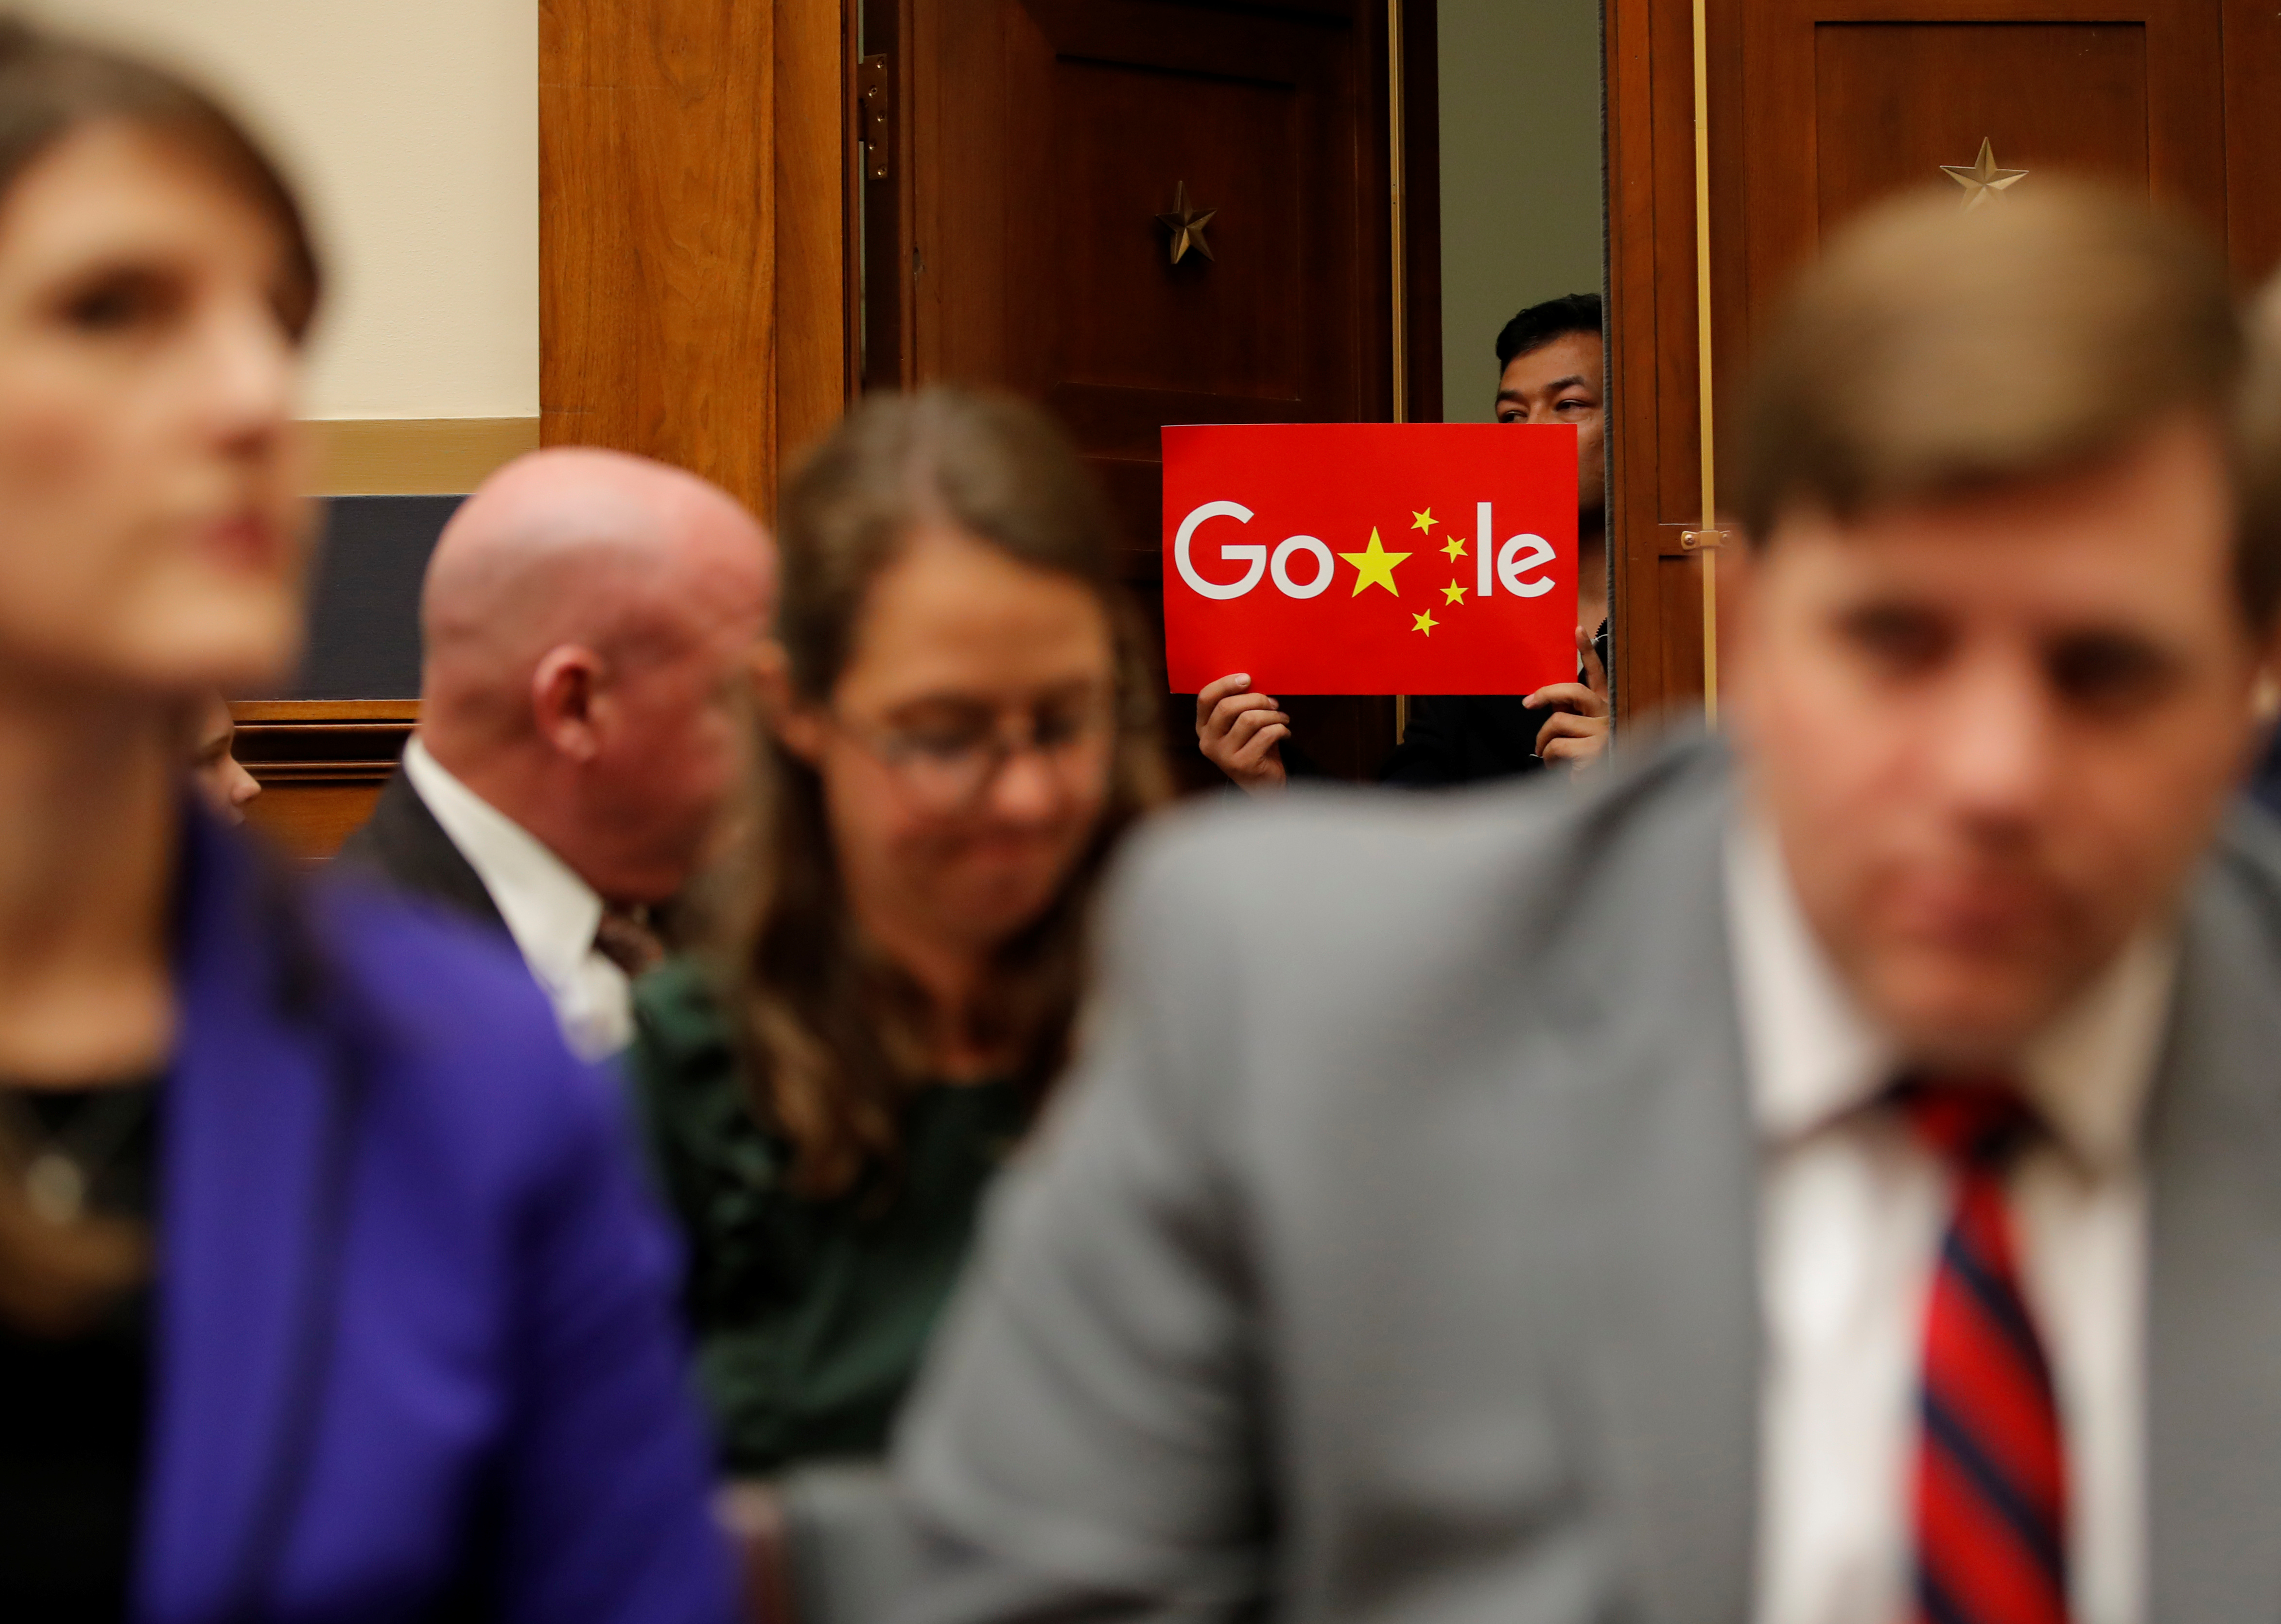 A demonstrator holds up a sign in the doorway as Google CEO Sundar Pichai testifies at a House Judiciary Committee on greater transparency in Washington, Dec. 11, 2018.